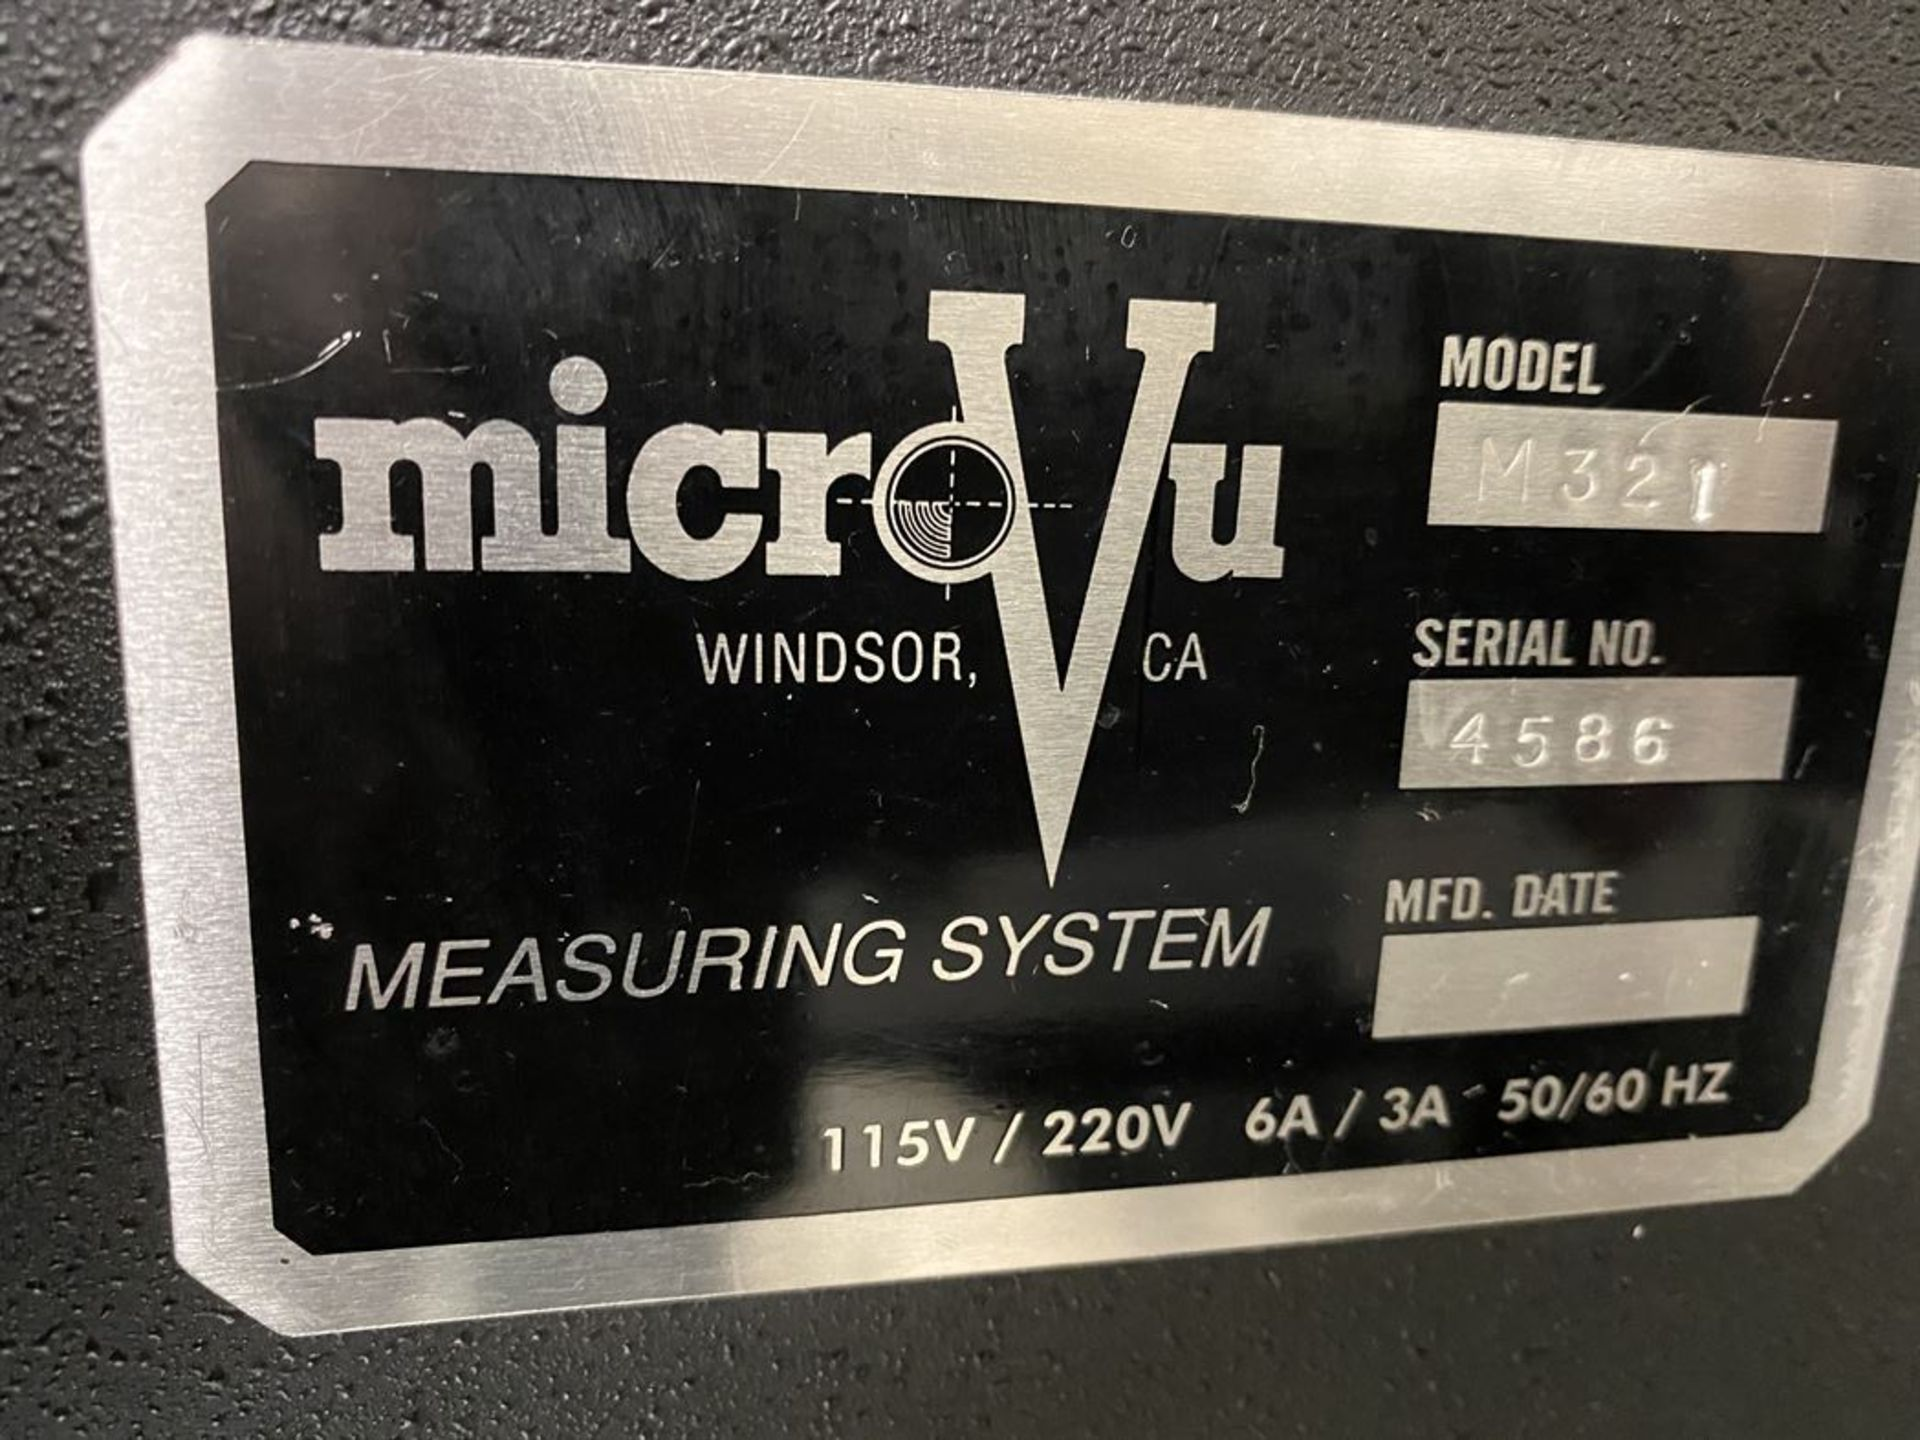 Lot 162 - Micro-Vu M321 Video Inspection System, s/n 4586, w/ Micro-Vu 9050A Video Reticle